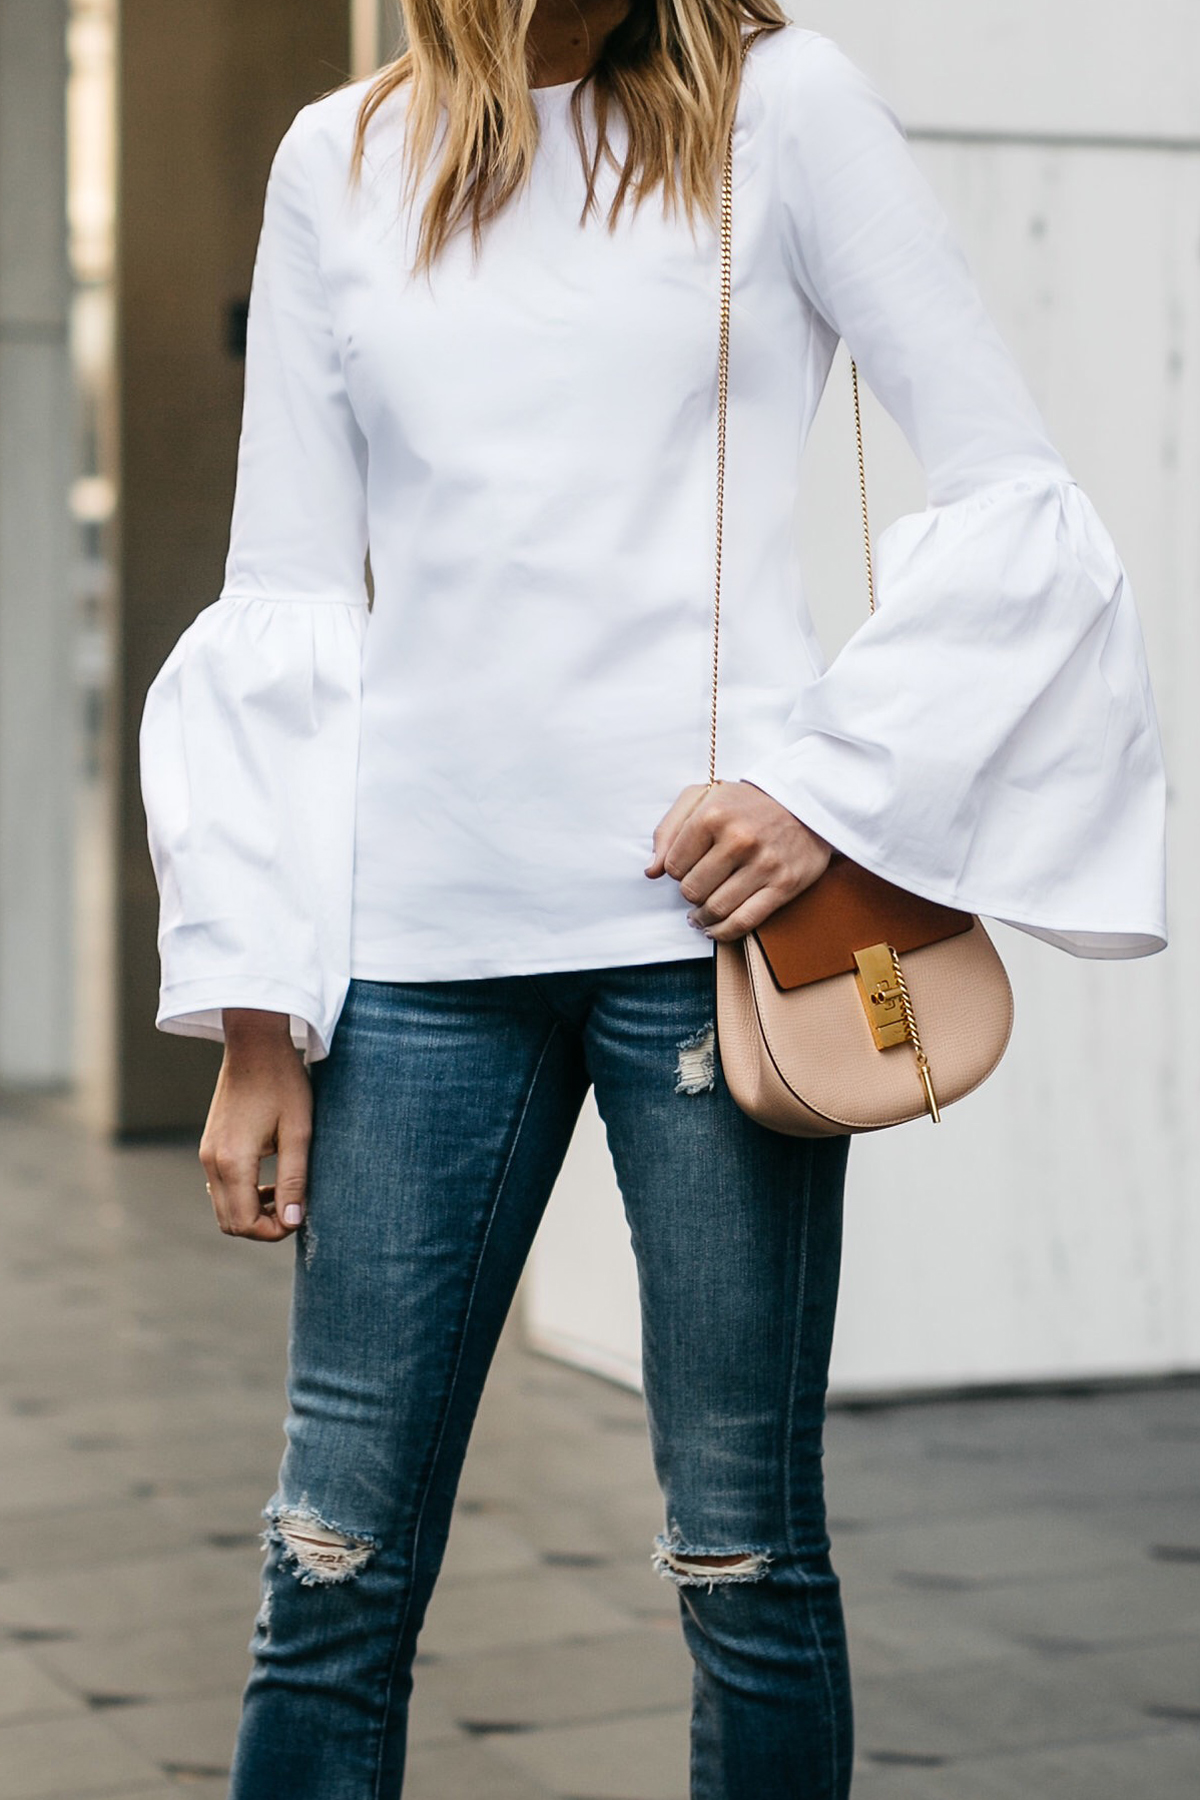 Fashion Jackson, Street Style, MLM Label Rhodes Top White, Blanknyc Denim Ripped Skinny Jeans, Chloe Drew Handbag